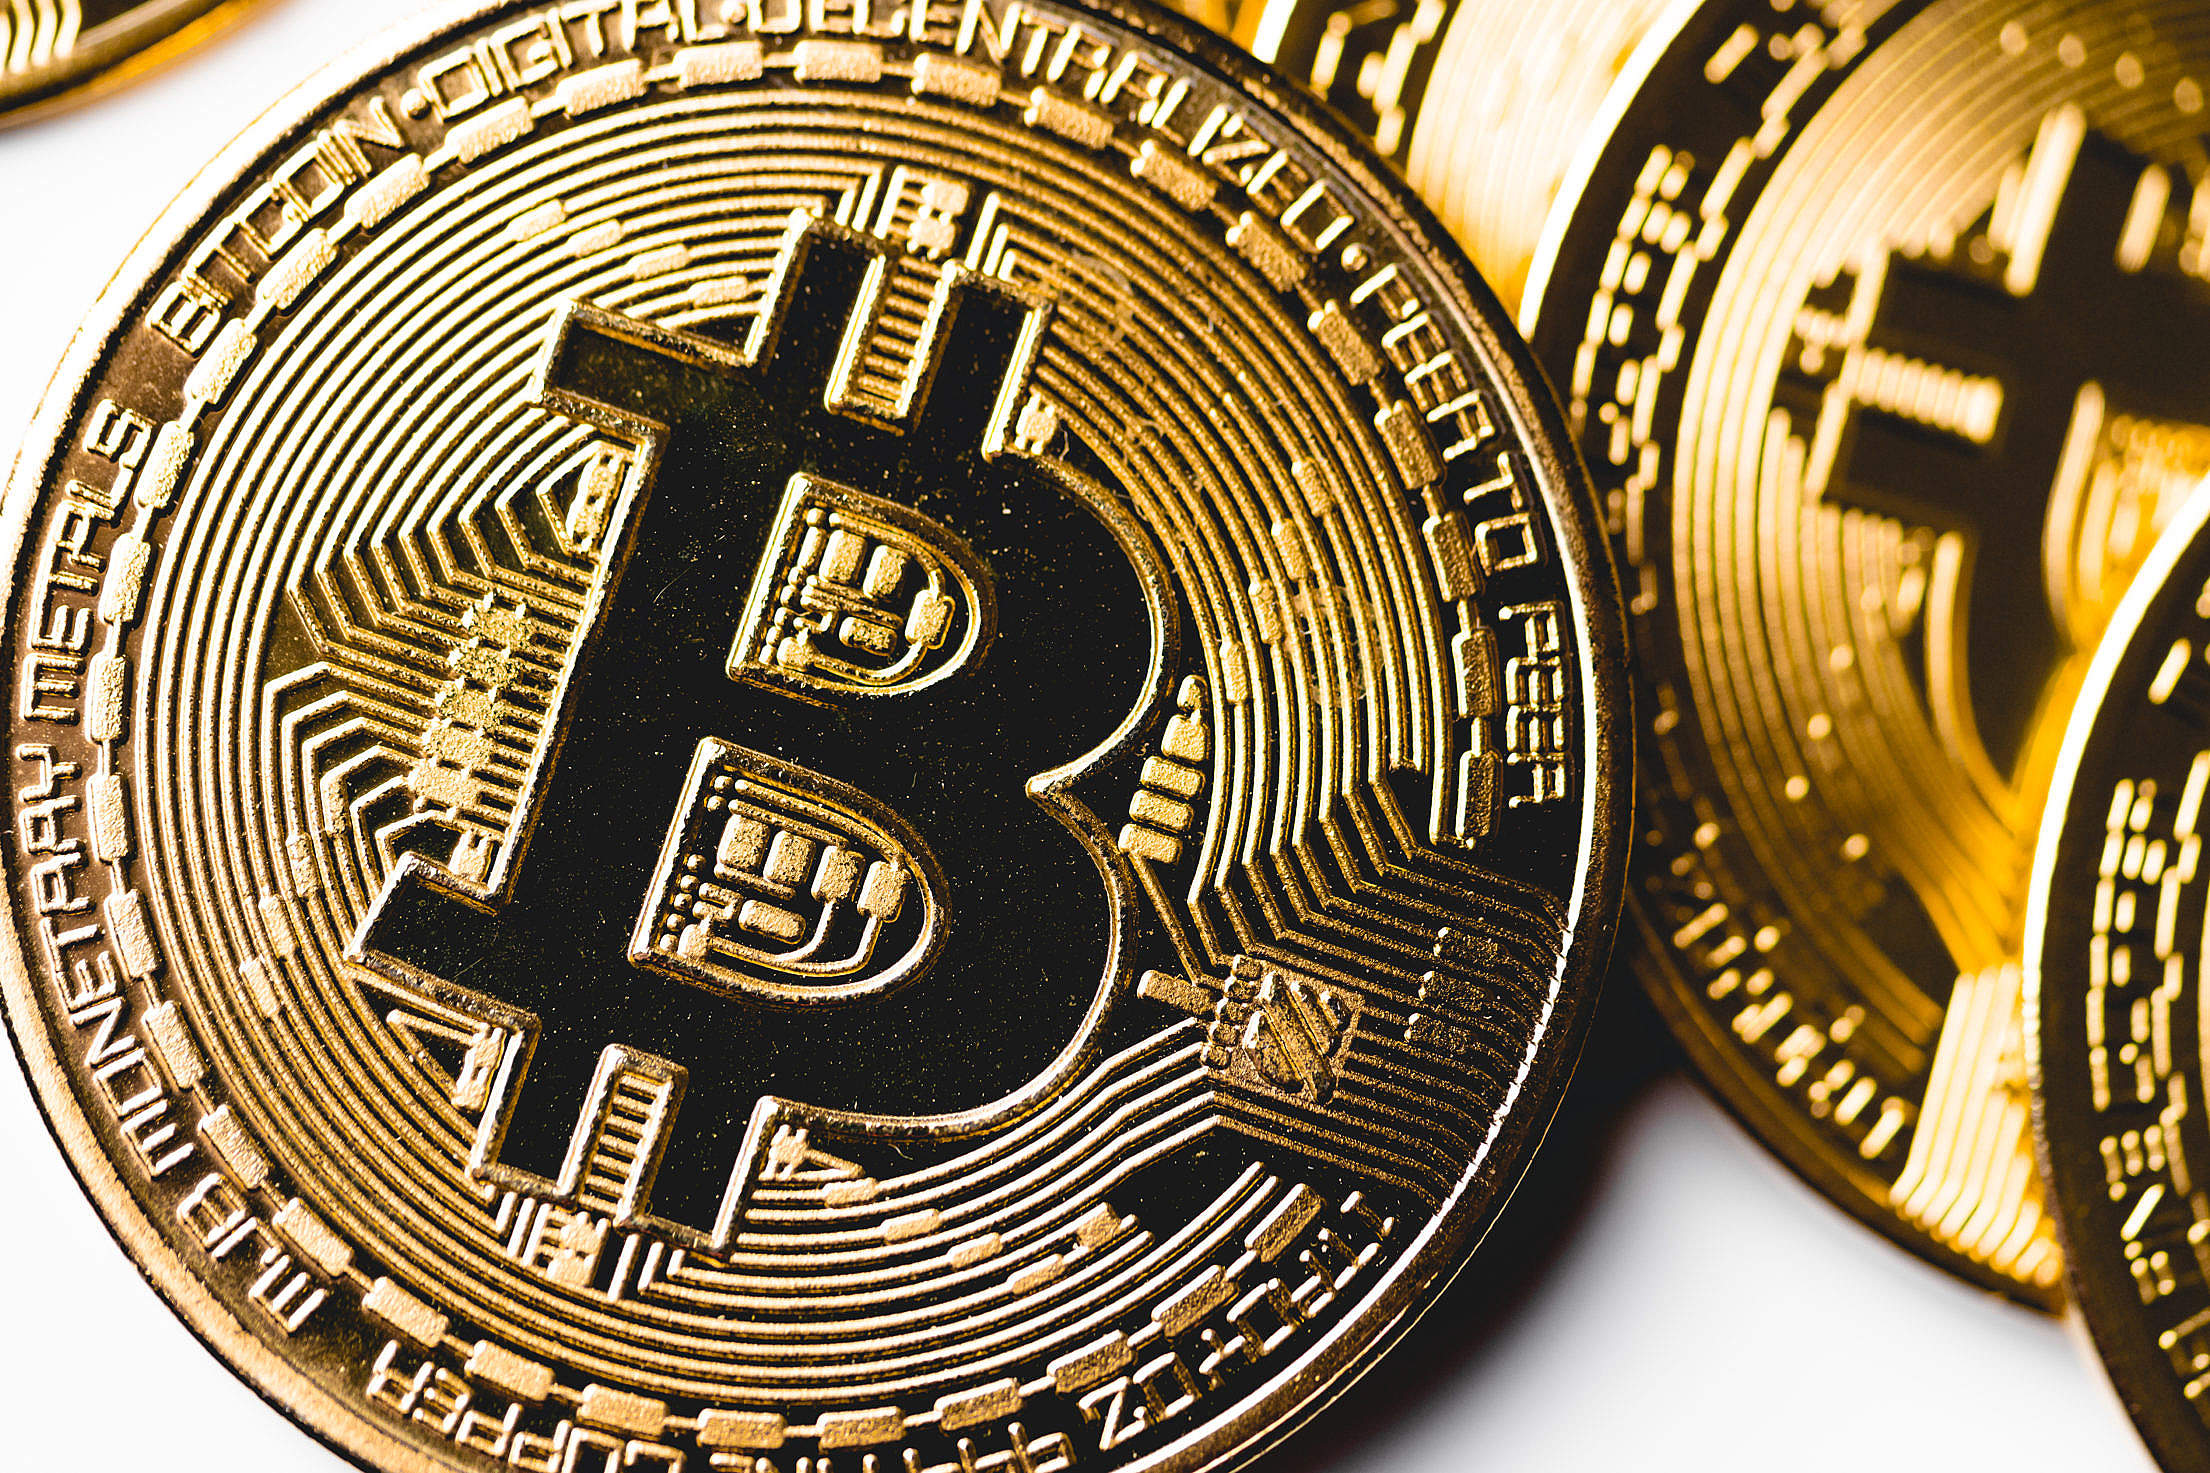 Golden Bitcoin Coin Close Up Free Stock Photo